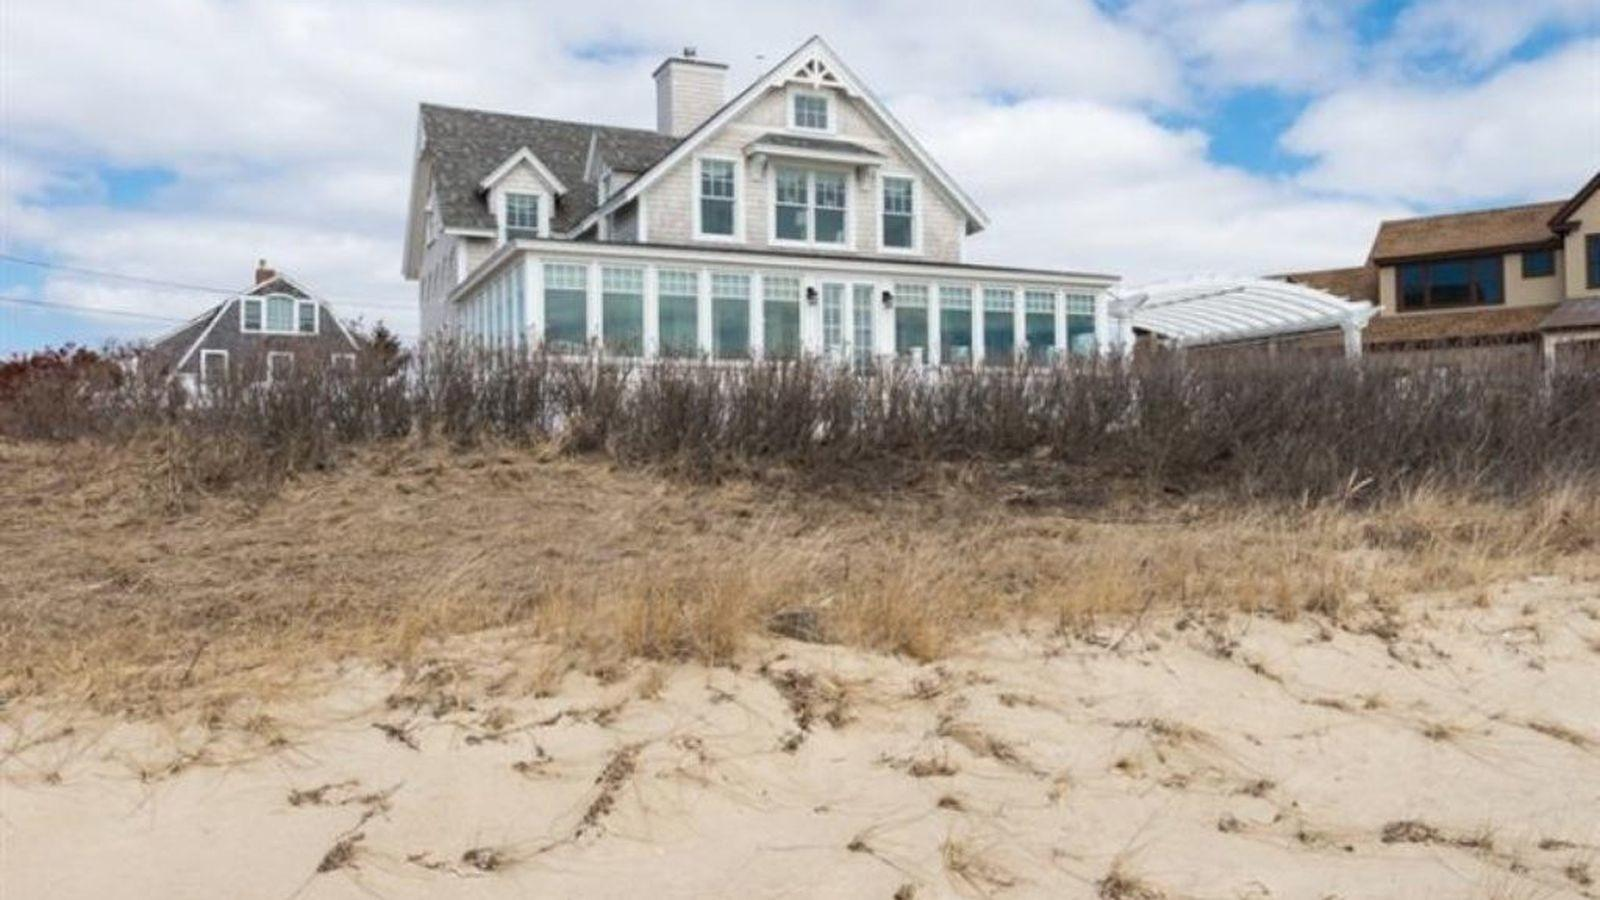 Big Reveal Much Renovated Beach House